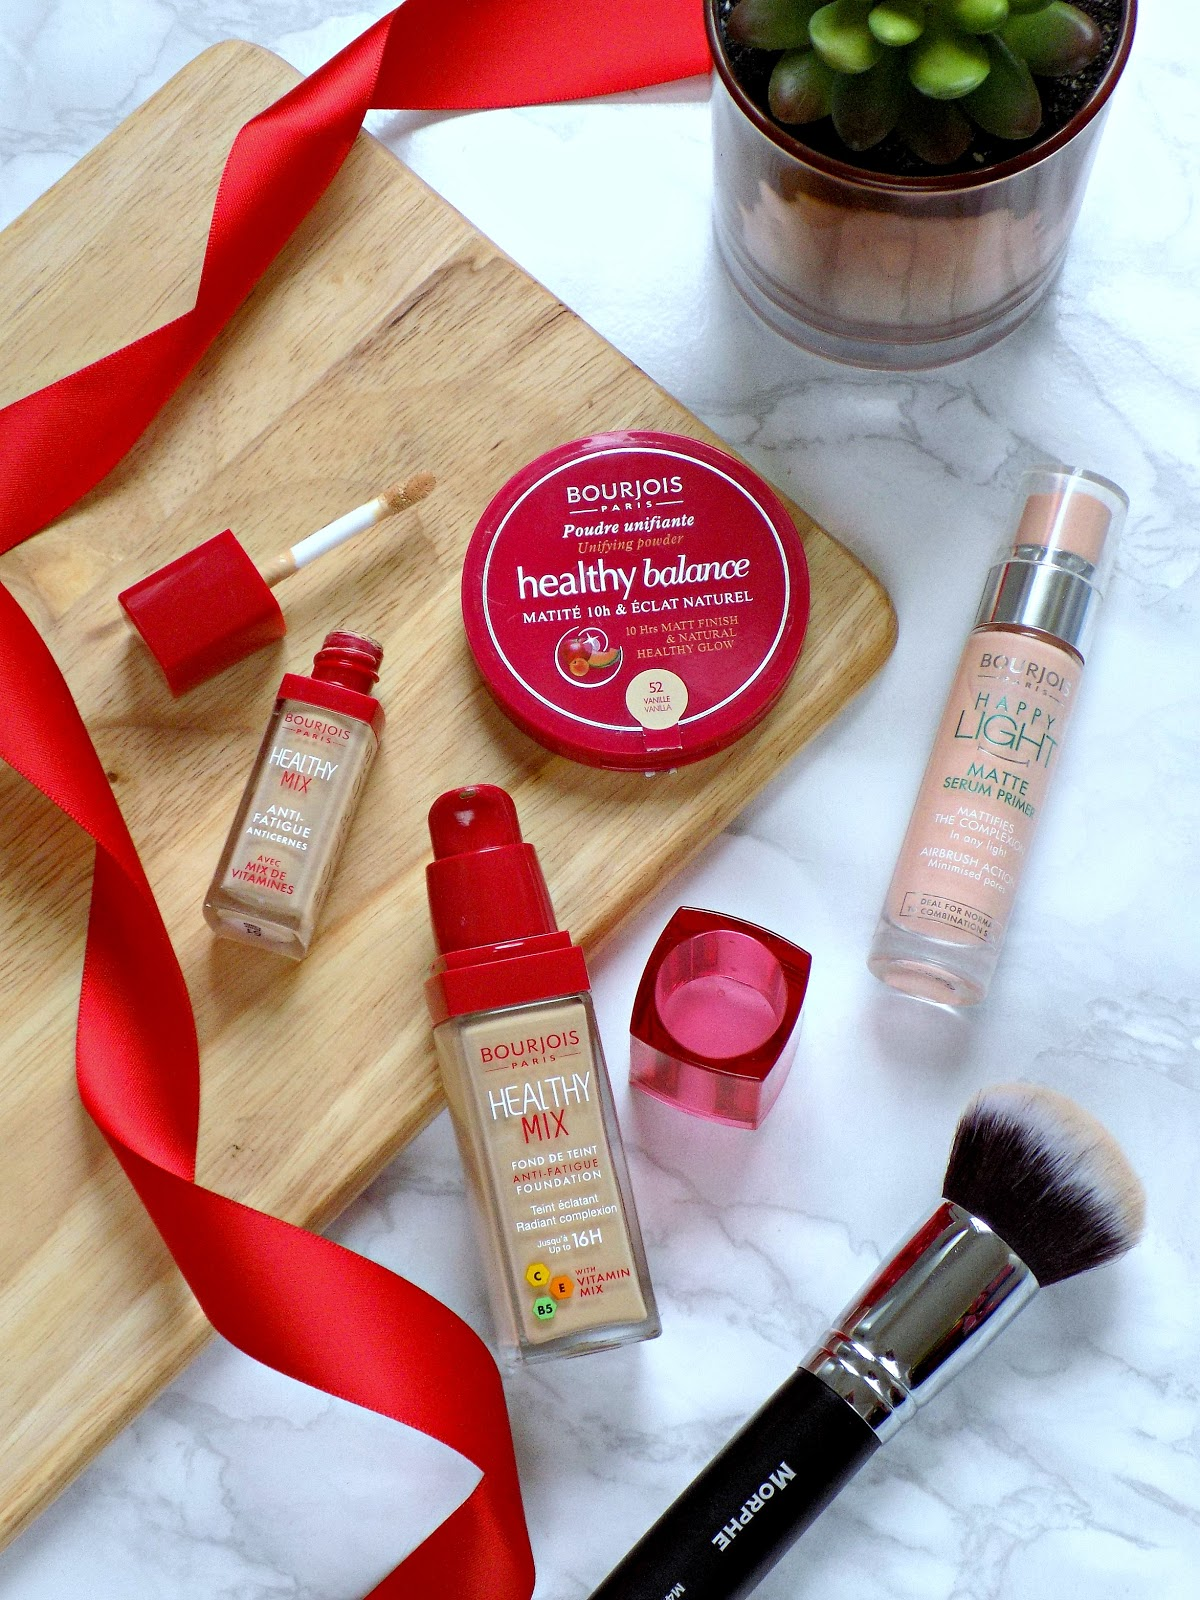 Bourjois Healthy Mix foundation, Healthy Mix concealer, Bourjois Happy Light Matte Primer